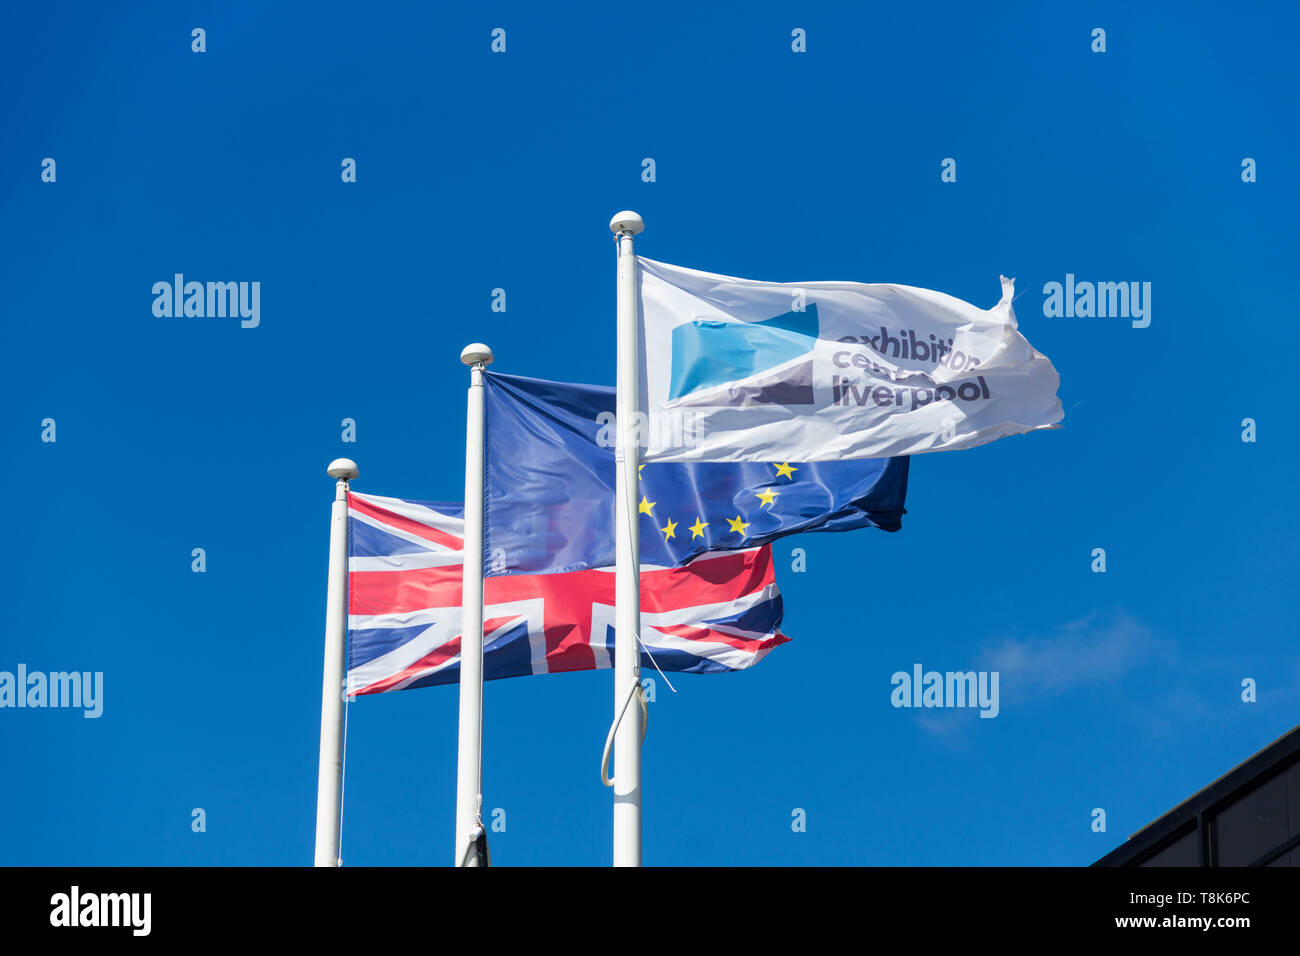 Union Jack and European Union flags flying outside the Liverpool Exhibition Centre on Kings Dock Liverpool, part of The ACC Liverpool Group. - Stock Image